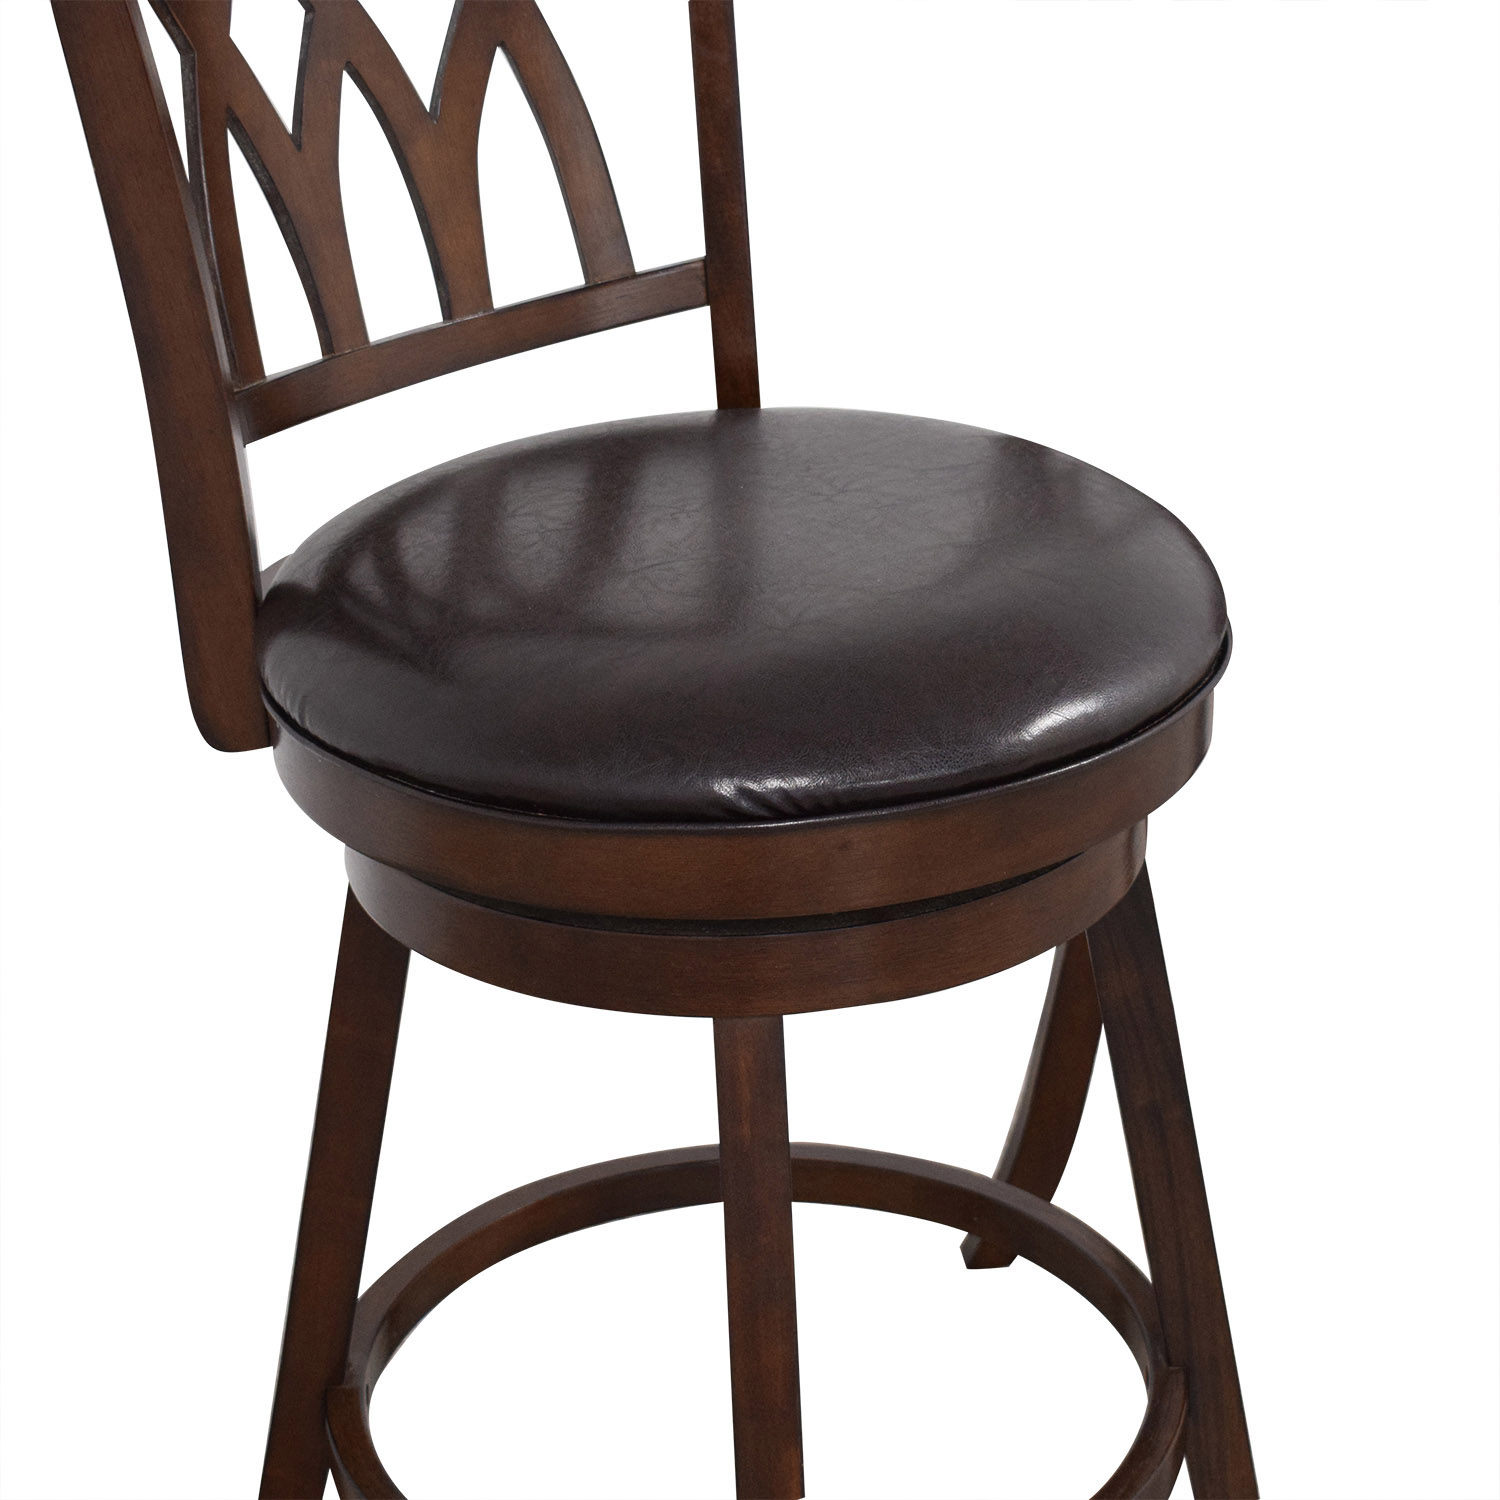 Counter Height Swivel Bar Stools / Chairs